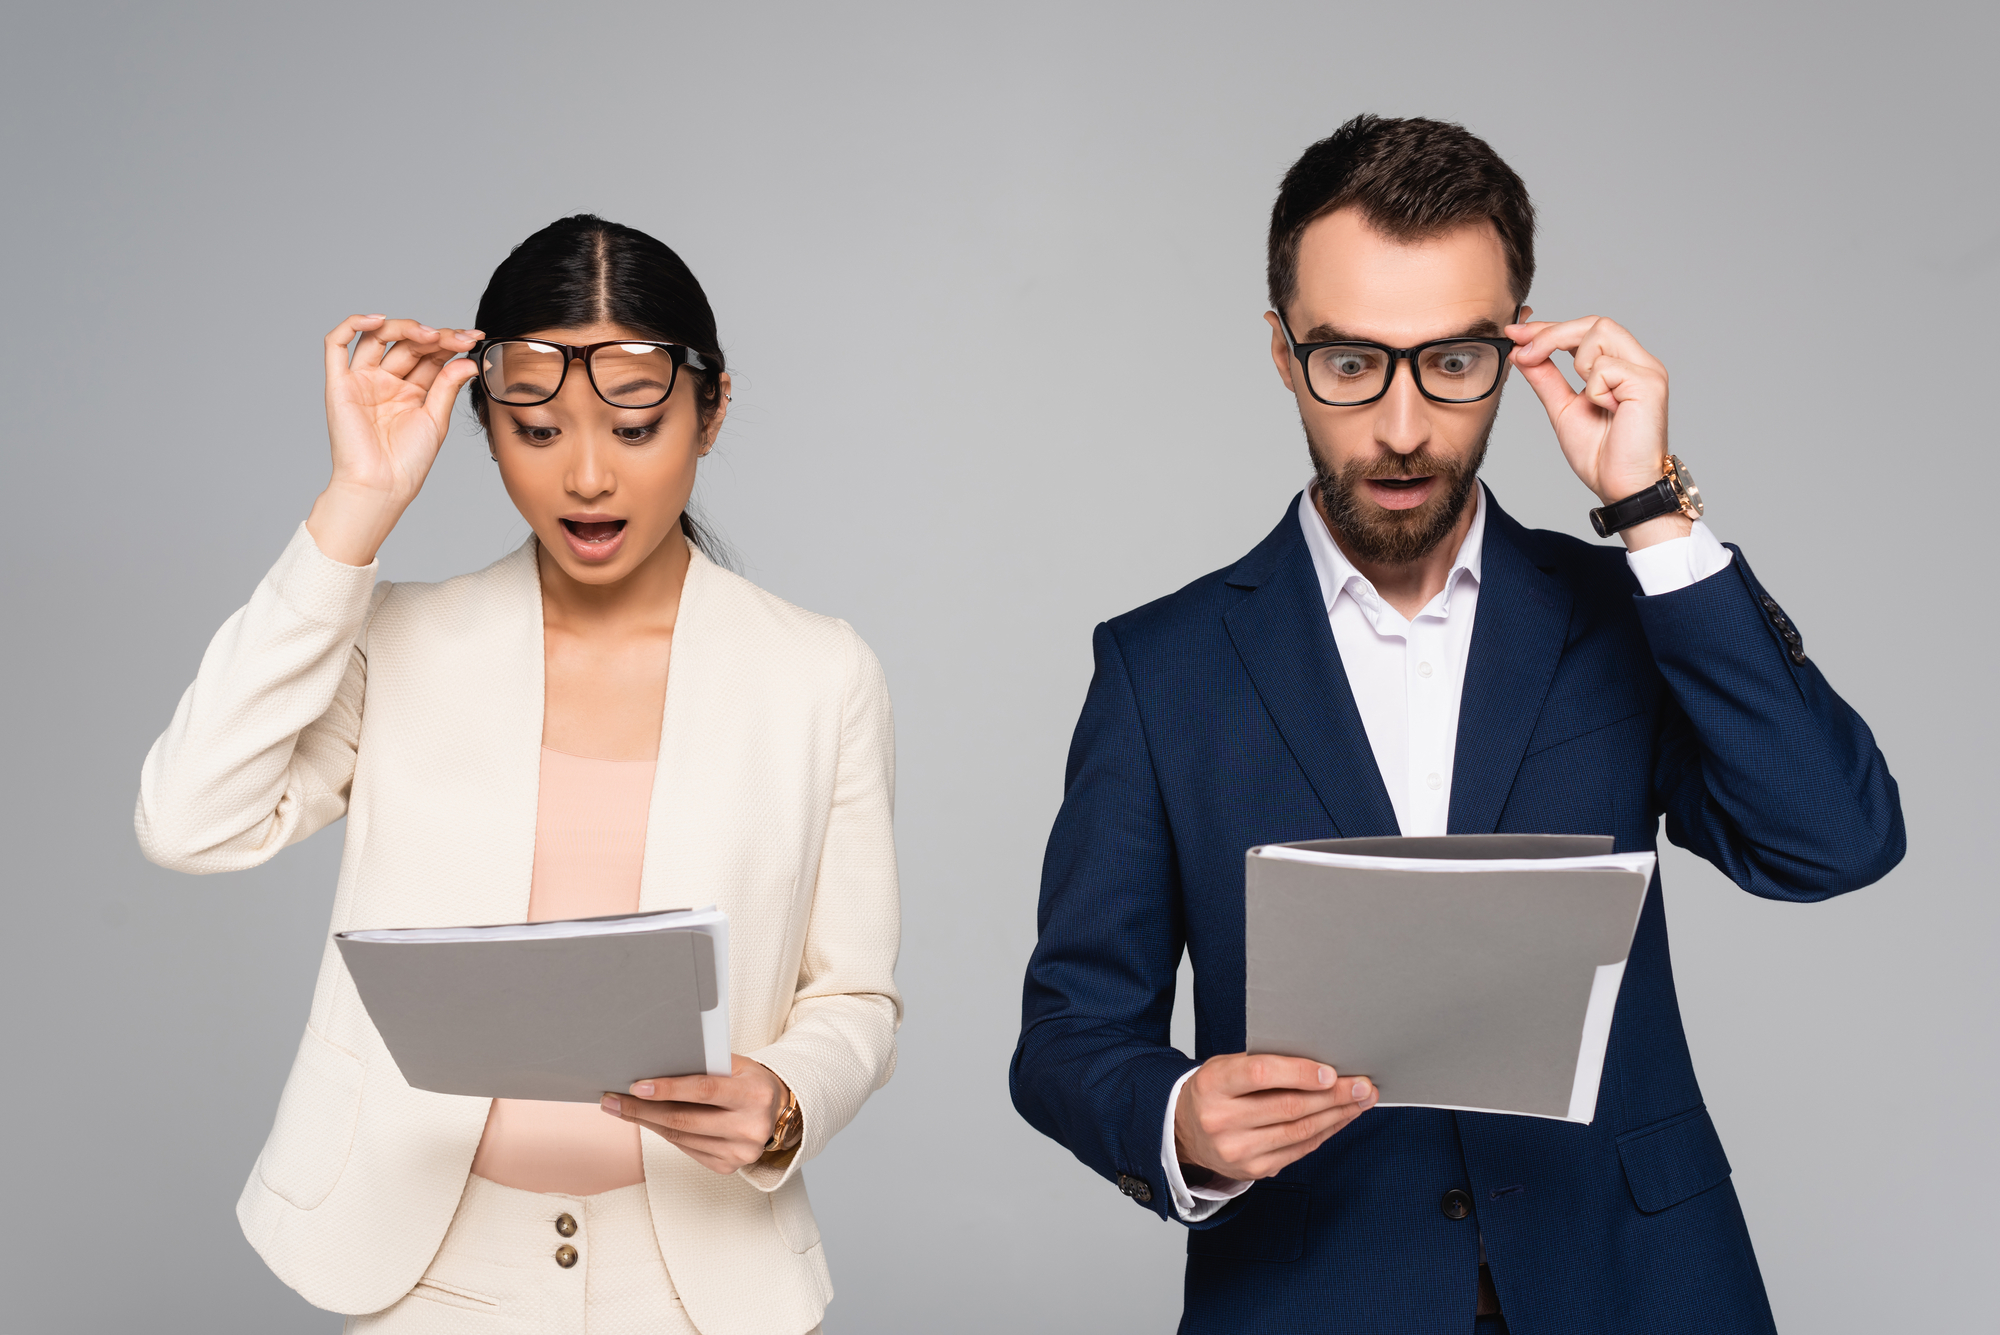 Surprised interracial business partners looking at documents and touching eyeglasses isolated on grey